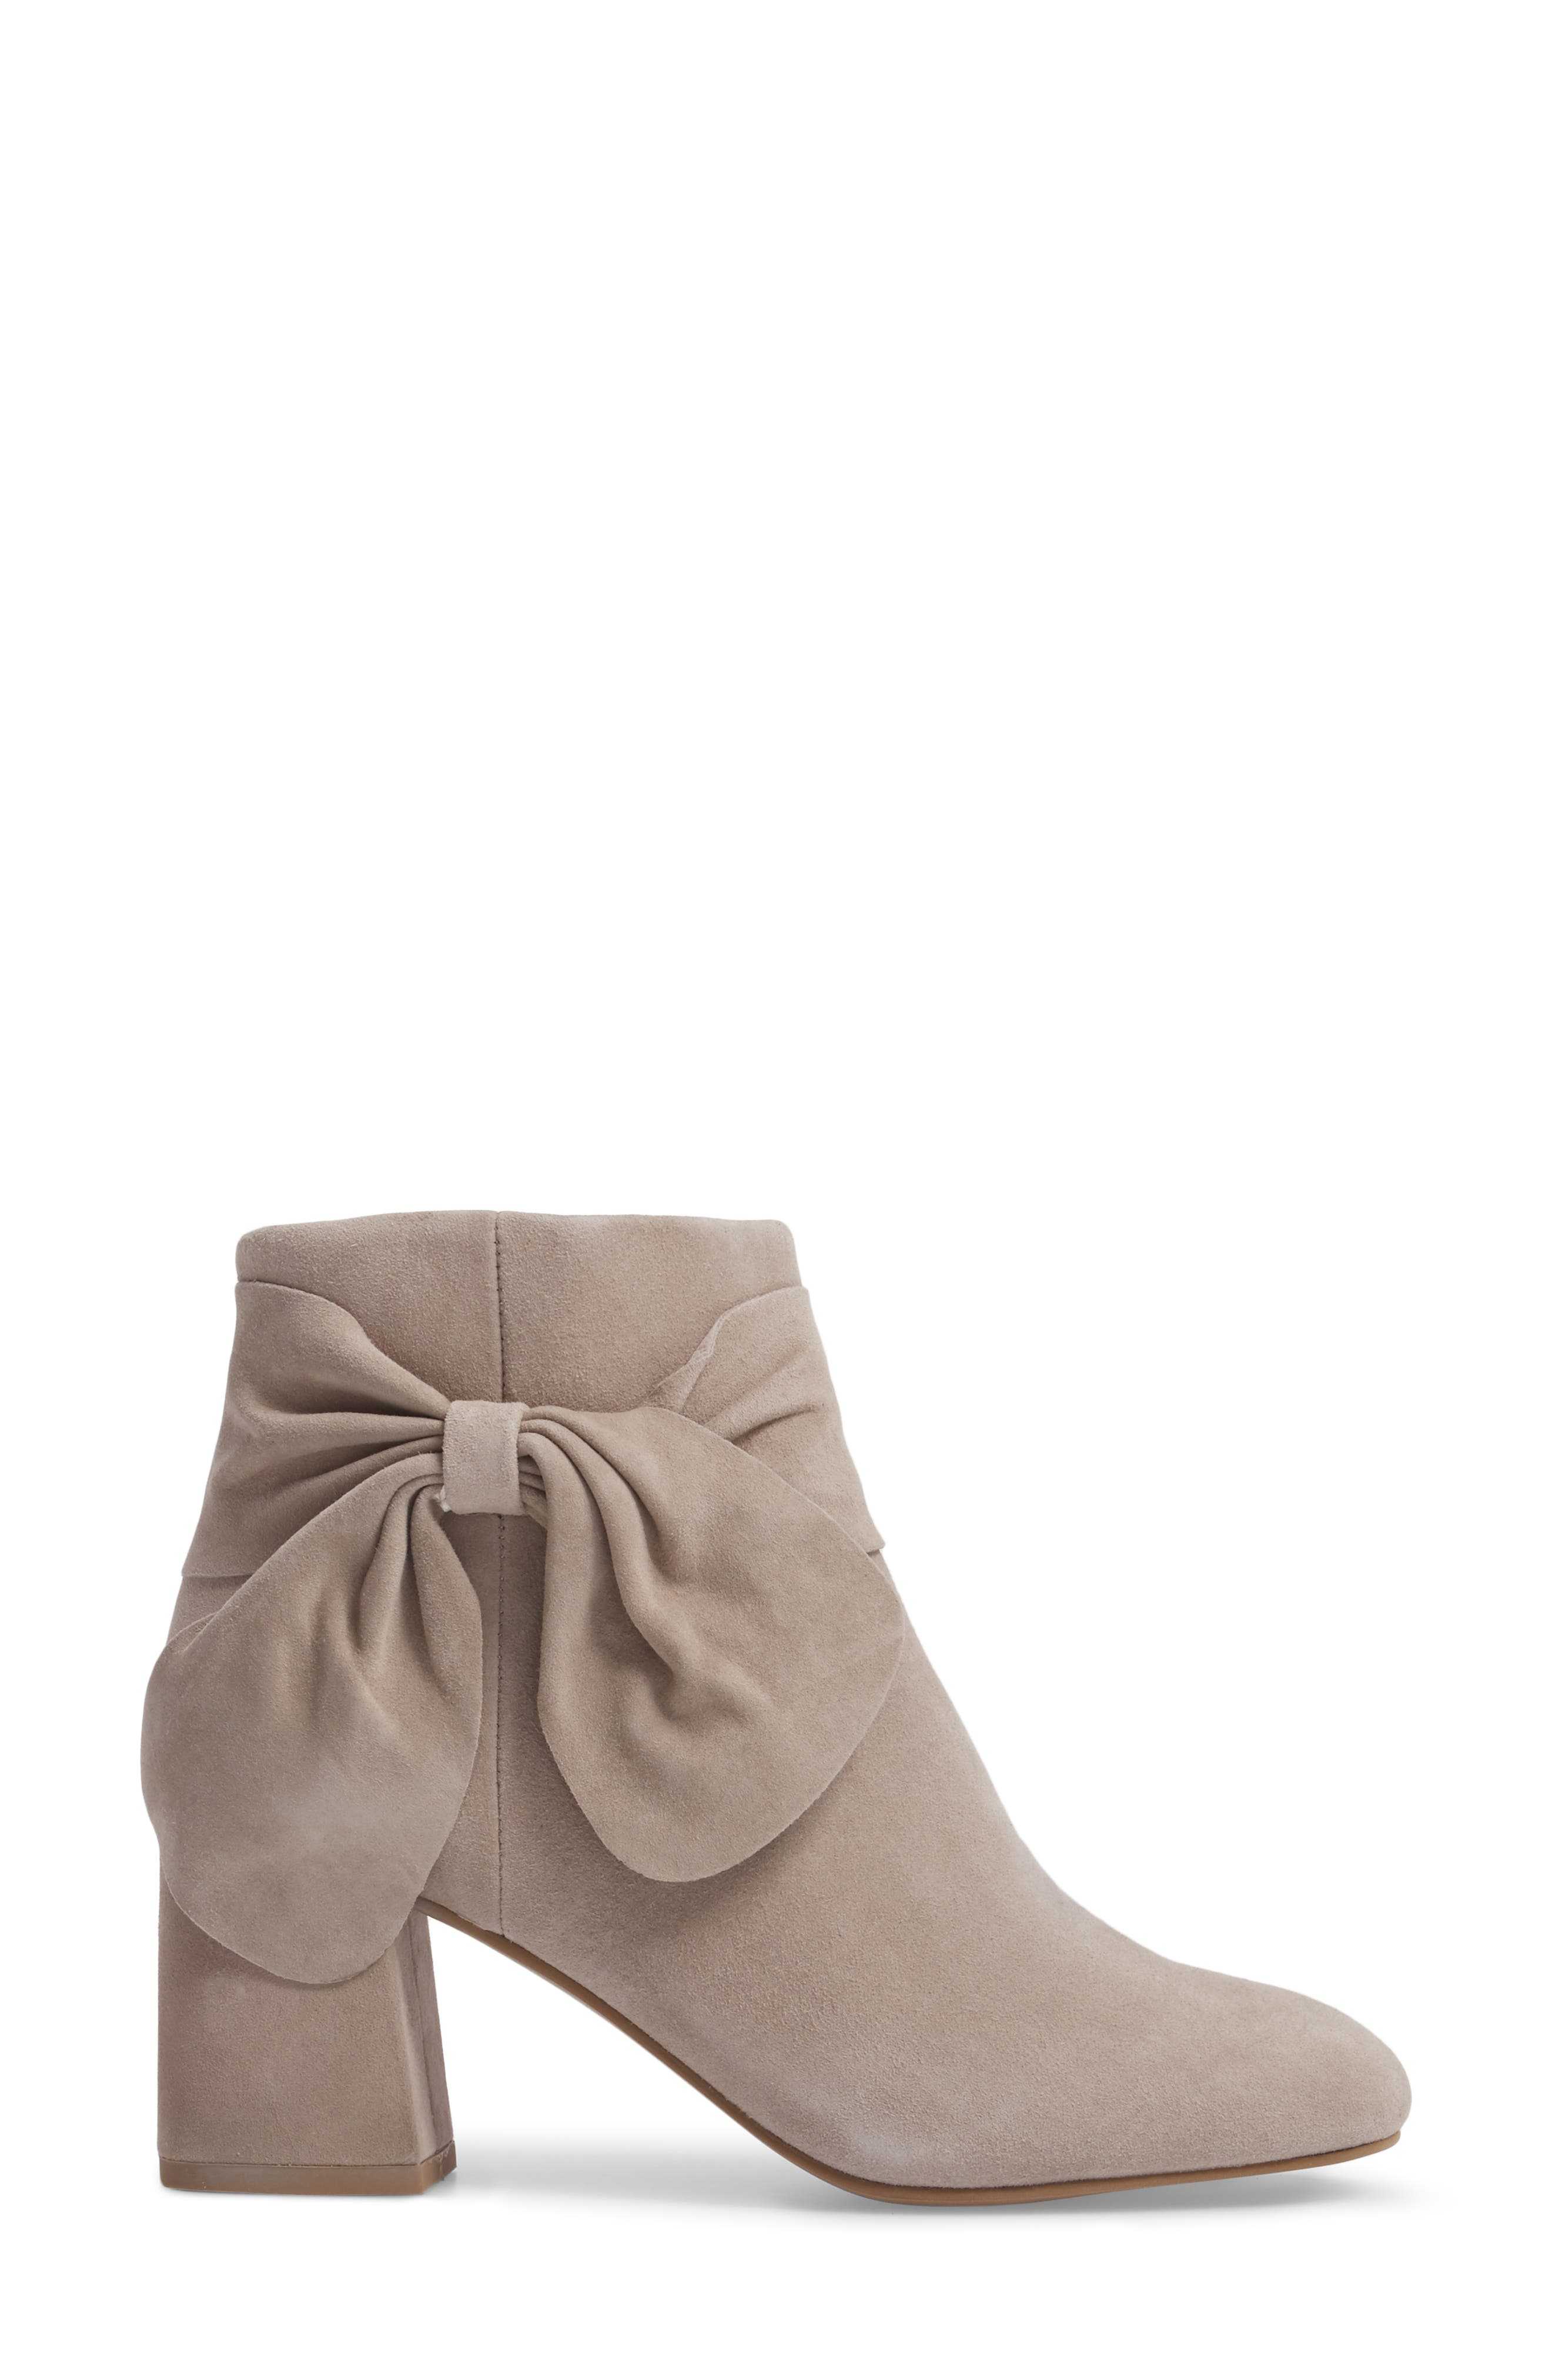 Catwalk Bootie,                             Alternate thumbnail 3, color,                             Taupe Suede